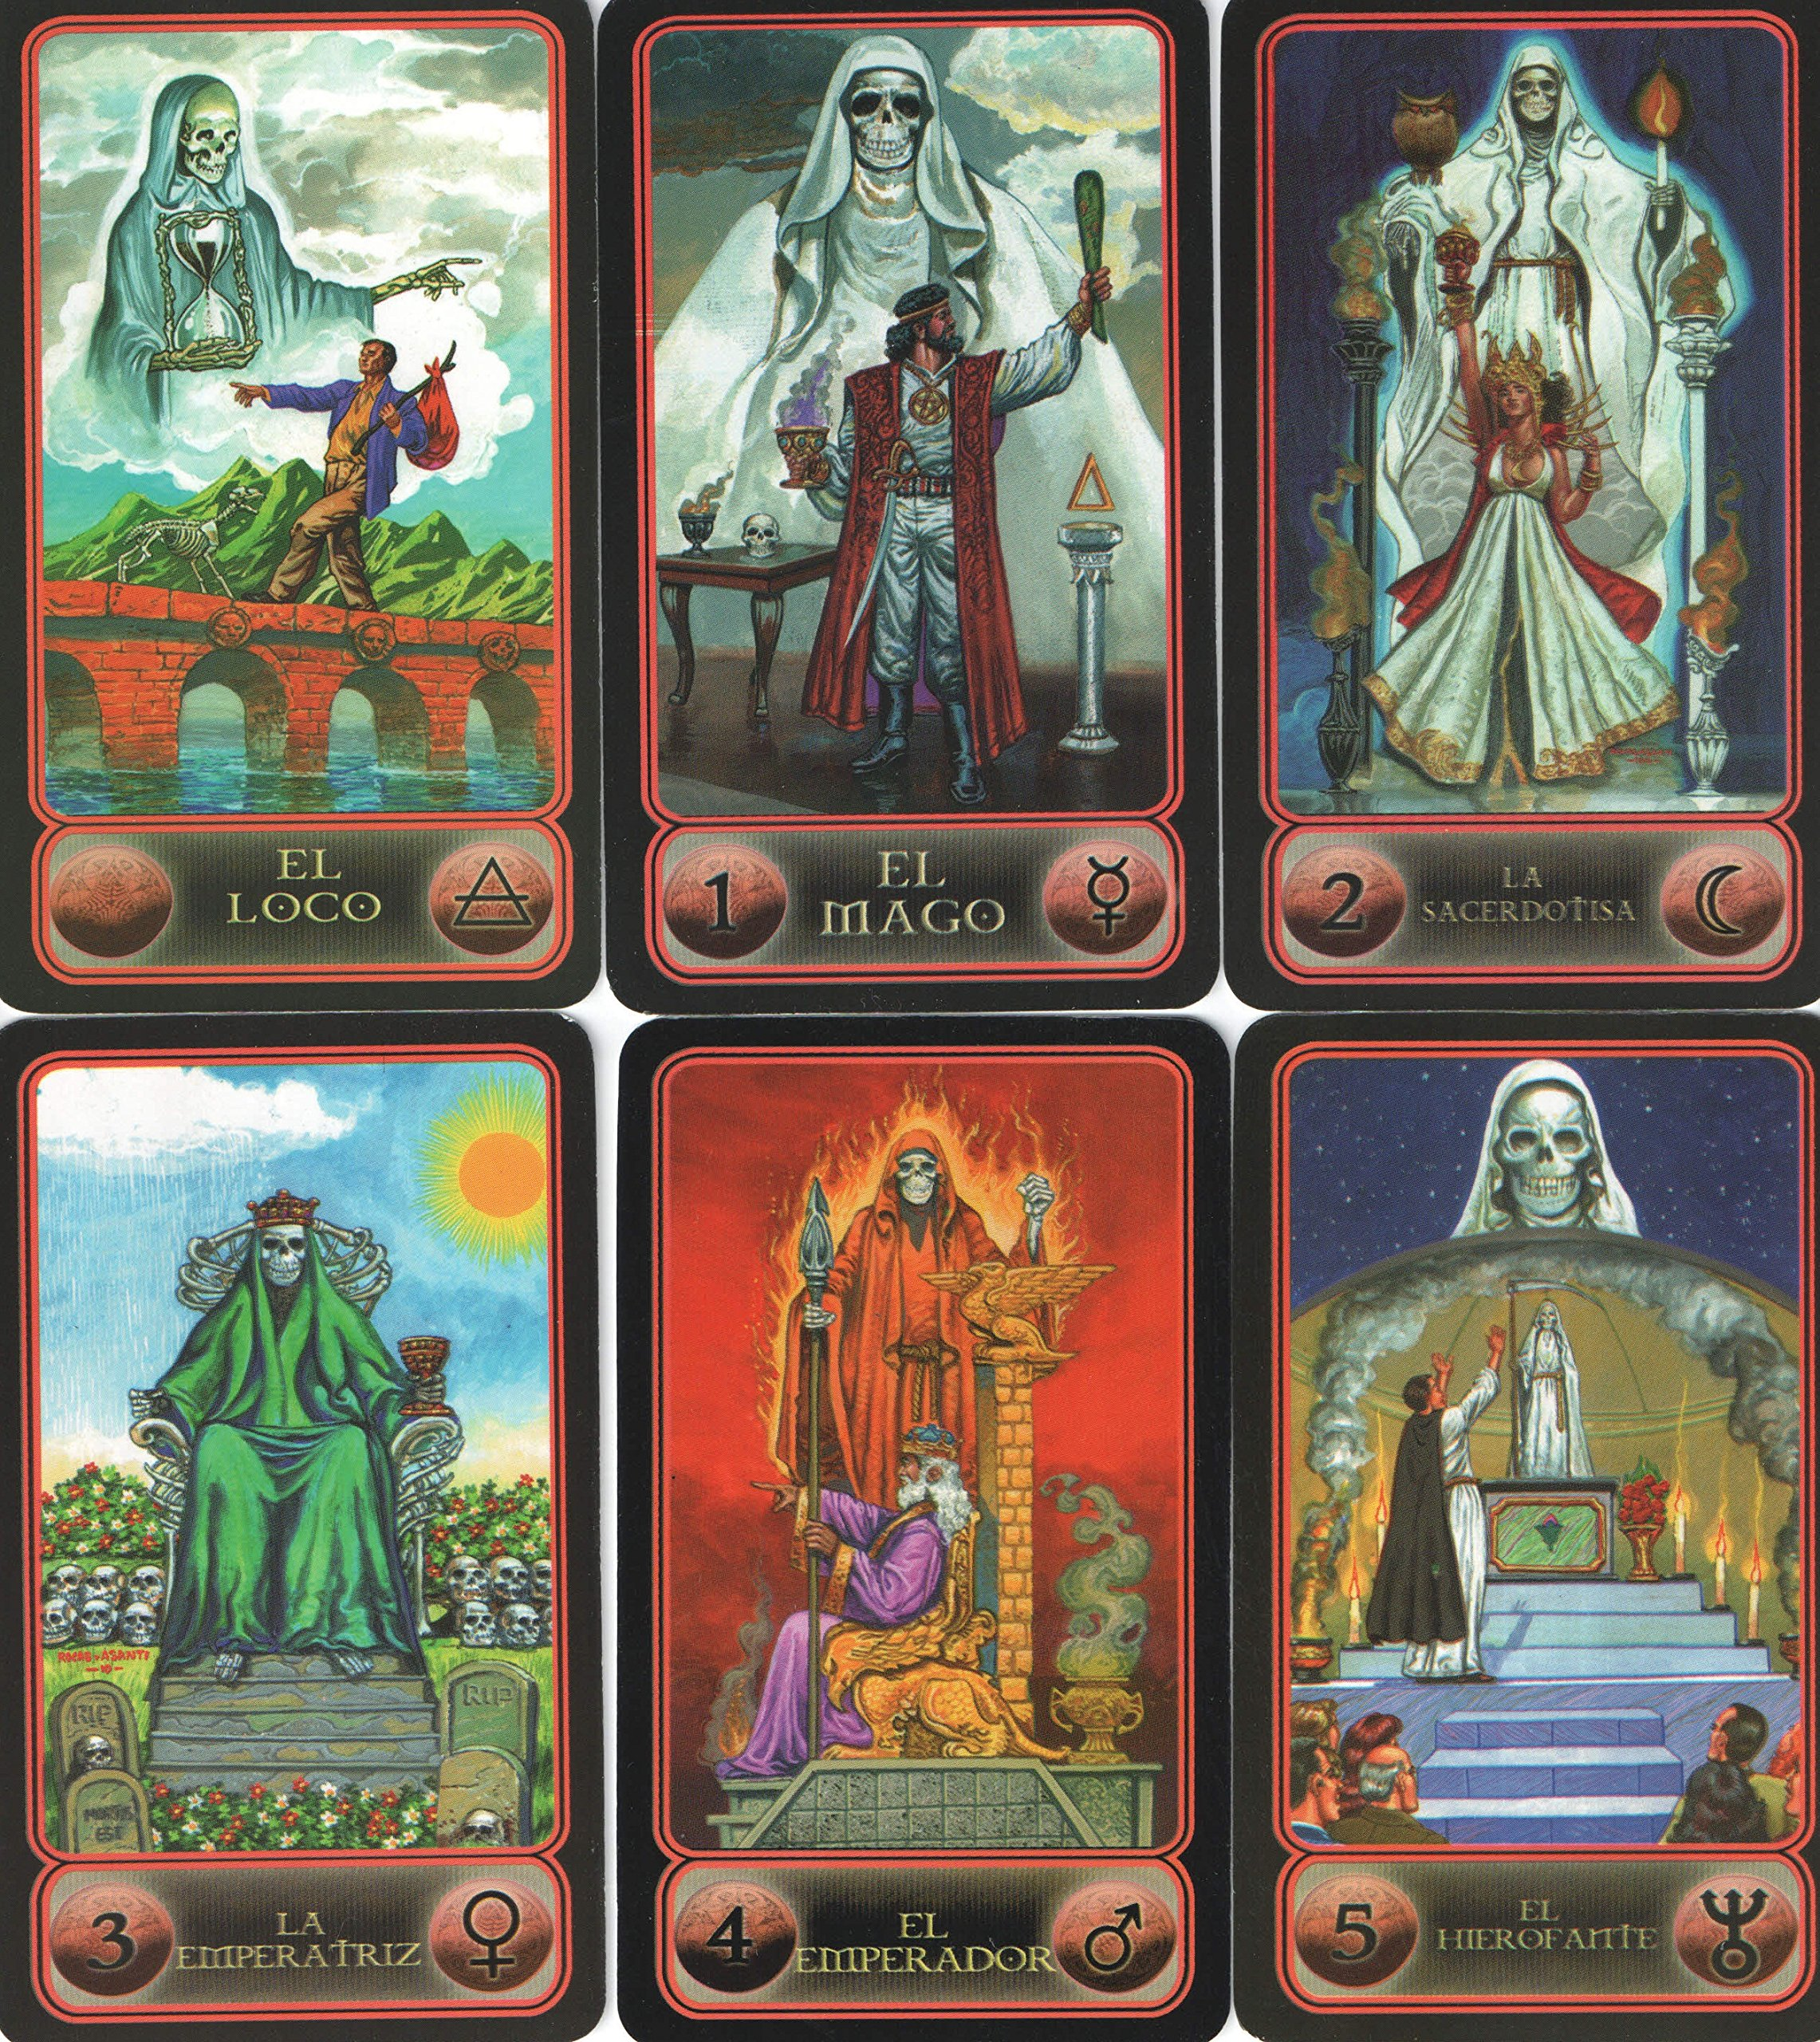 Amazon.com: Tarot de la Santa Muerte (Spanish Edition ...